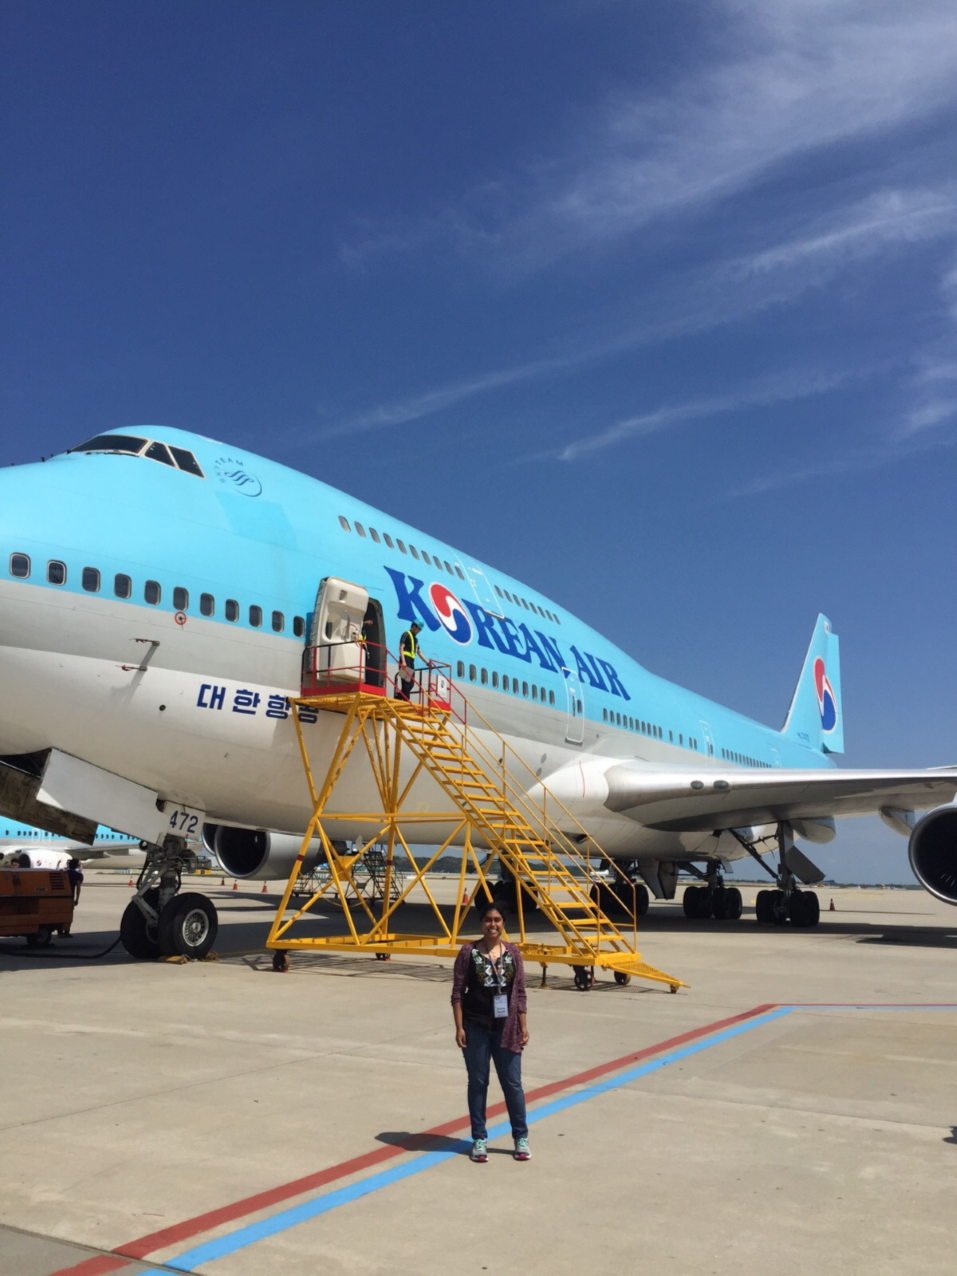 At Incheon International Airport in front of a Korean Air 737